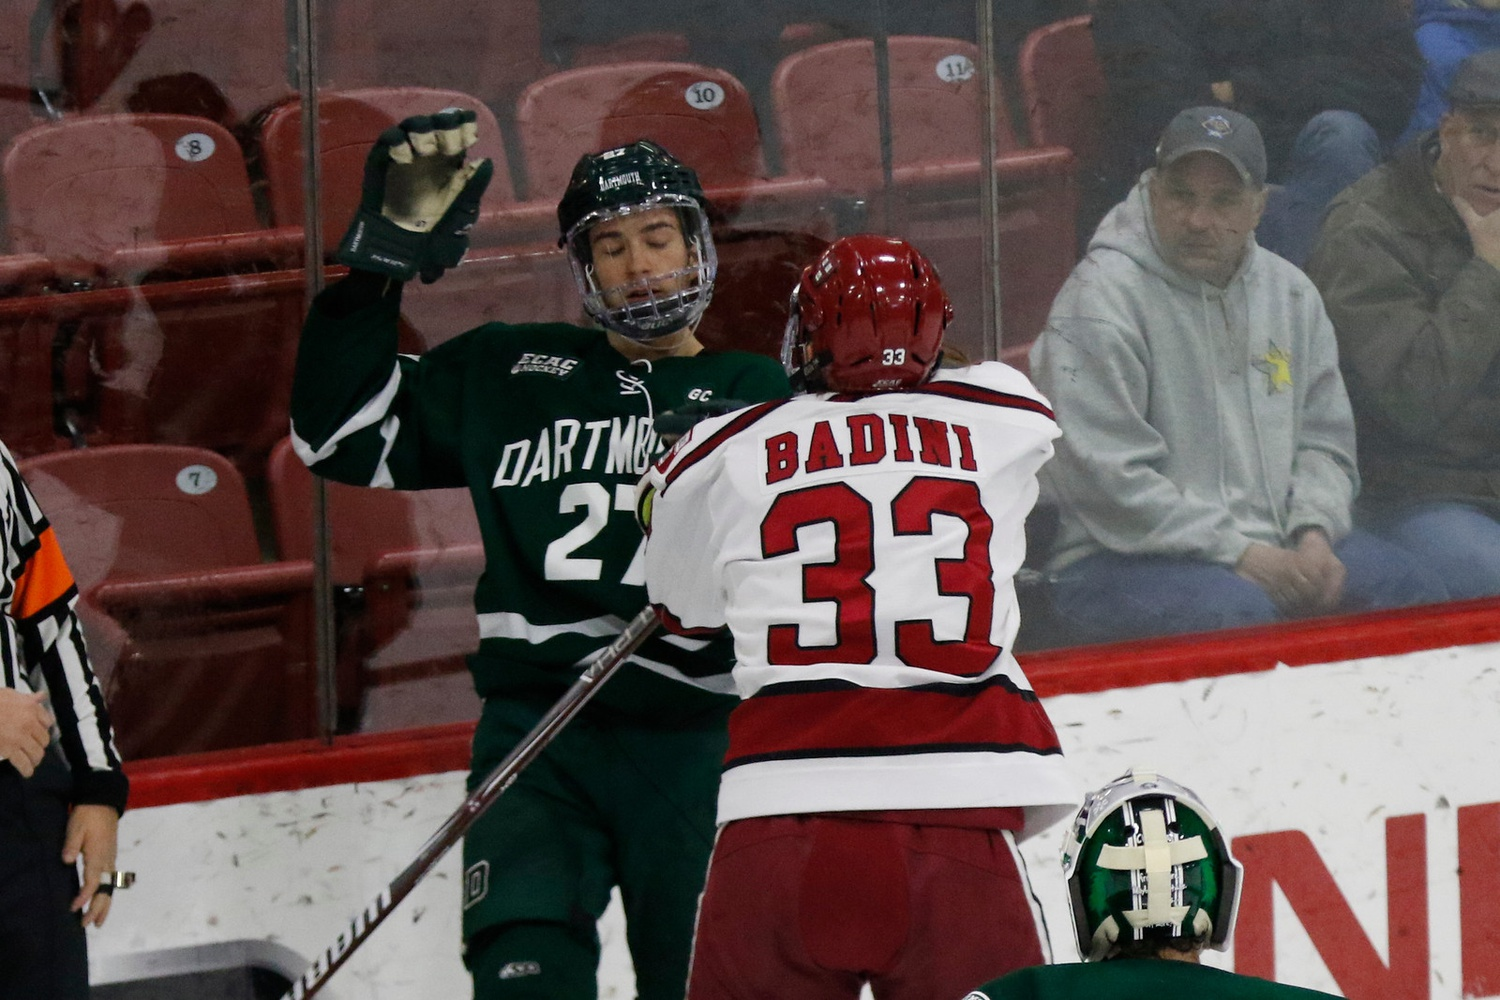 After last year's ECAC quarterfinal clash, tensions were high in all four meetings between the Crimson and the Big Green this season.